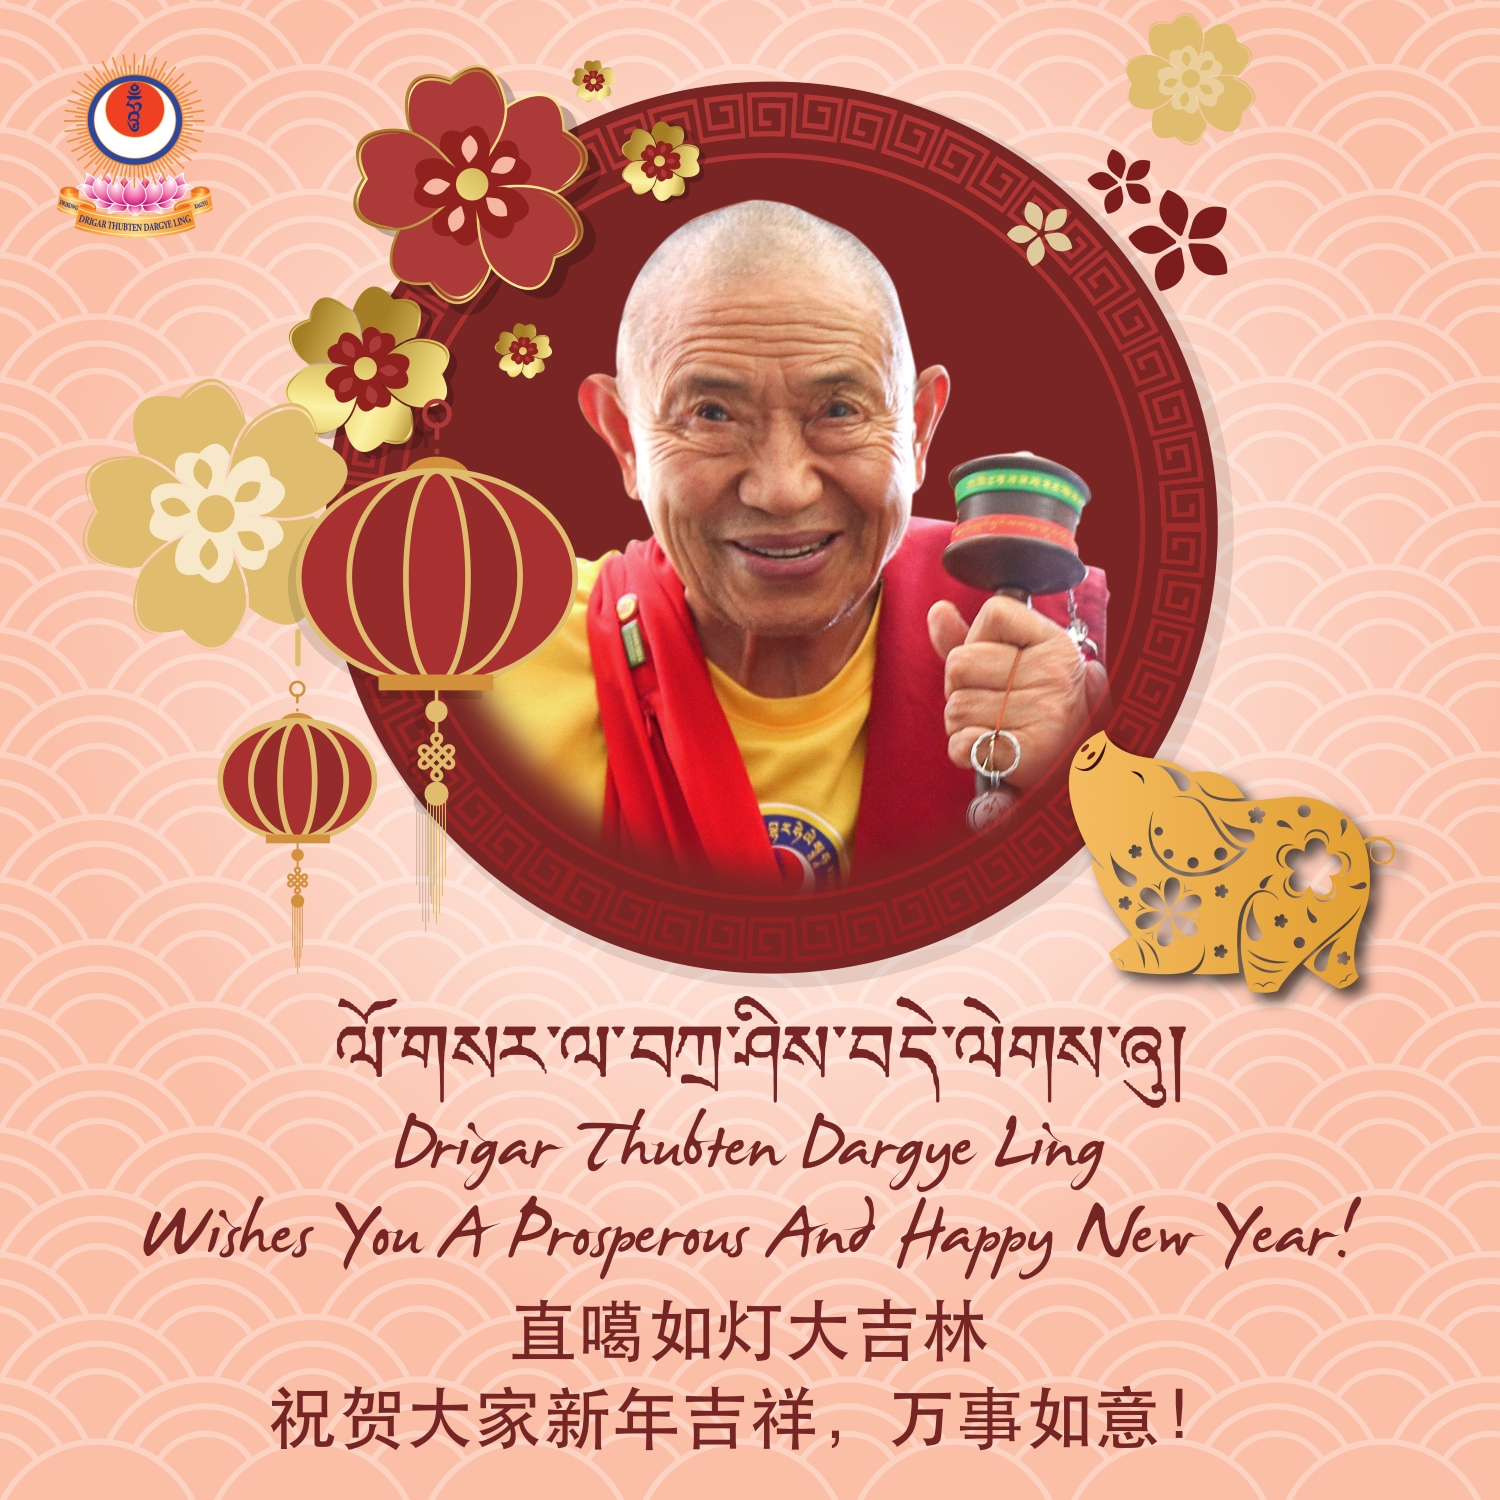 2019-cny-greeting